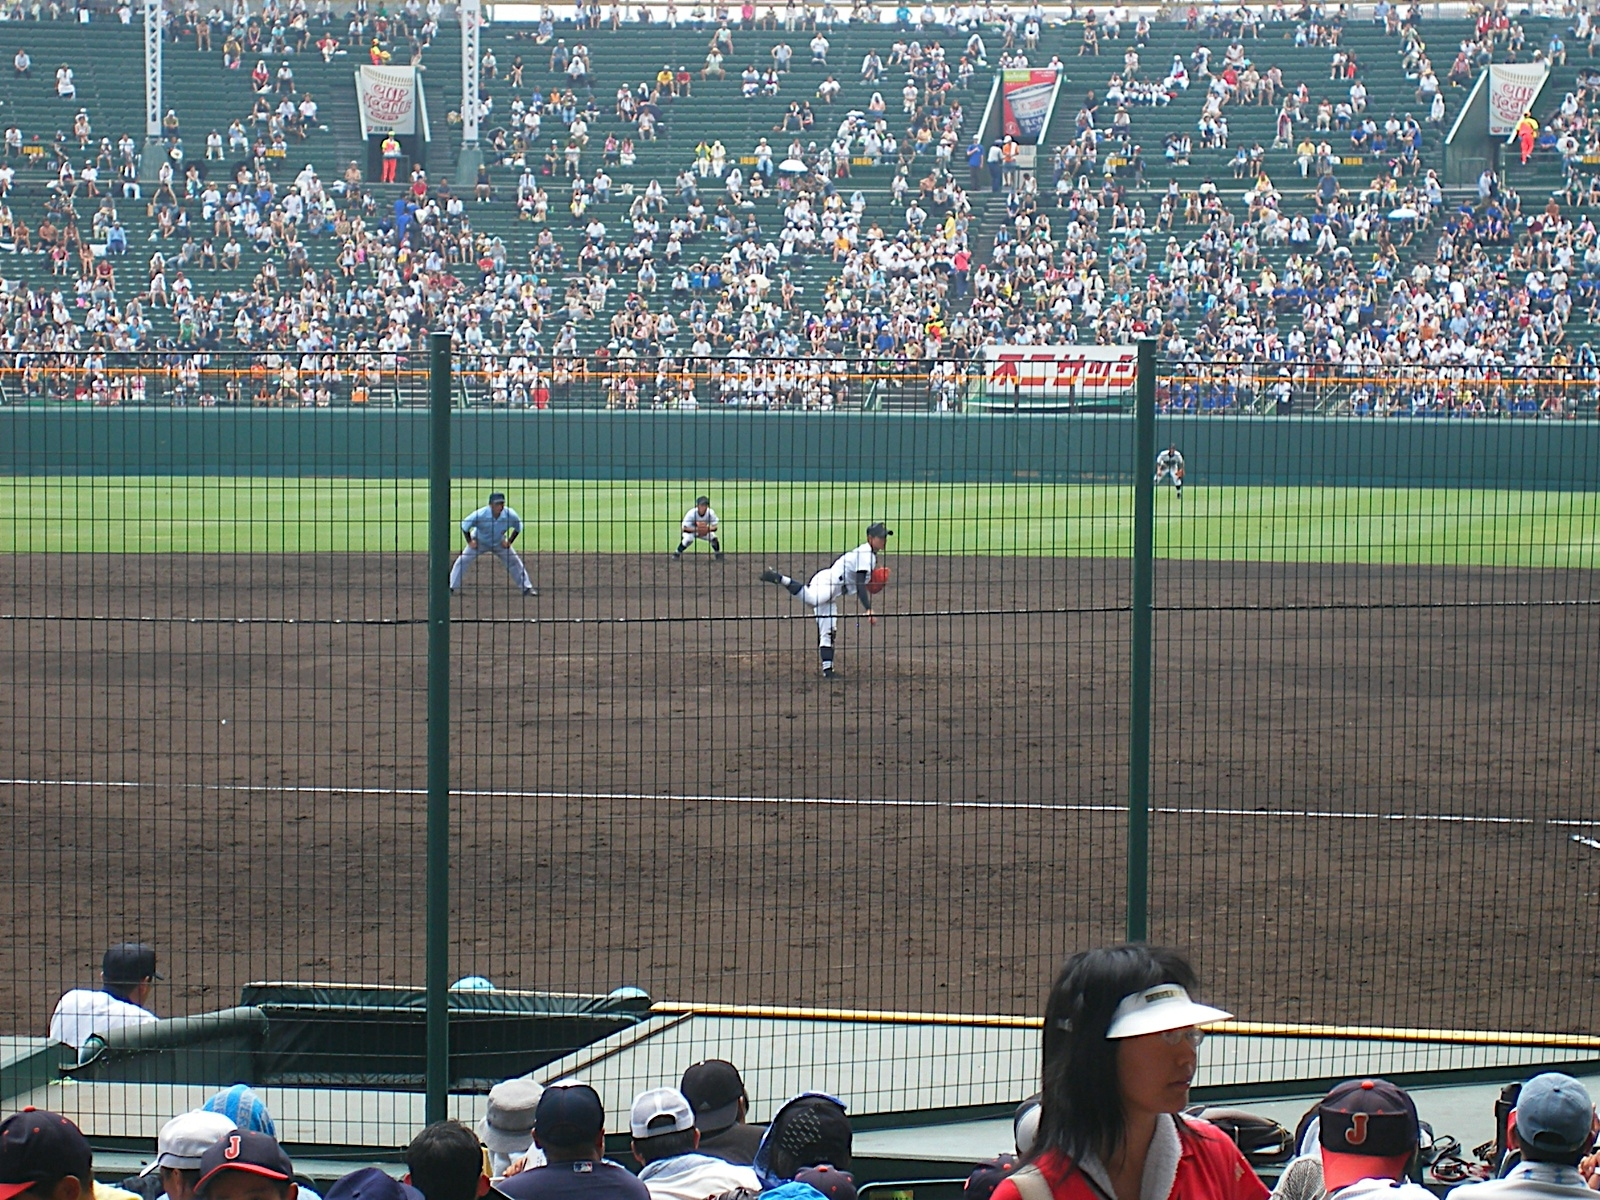 A scene from Japan's high school tournament, Koushien.